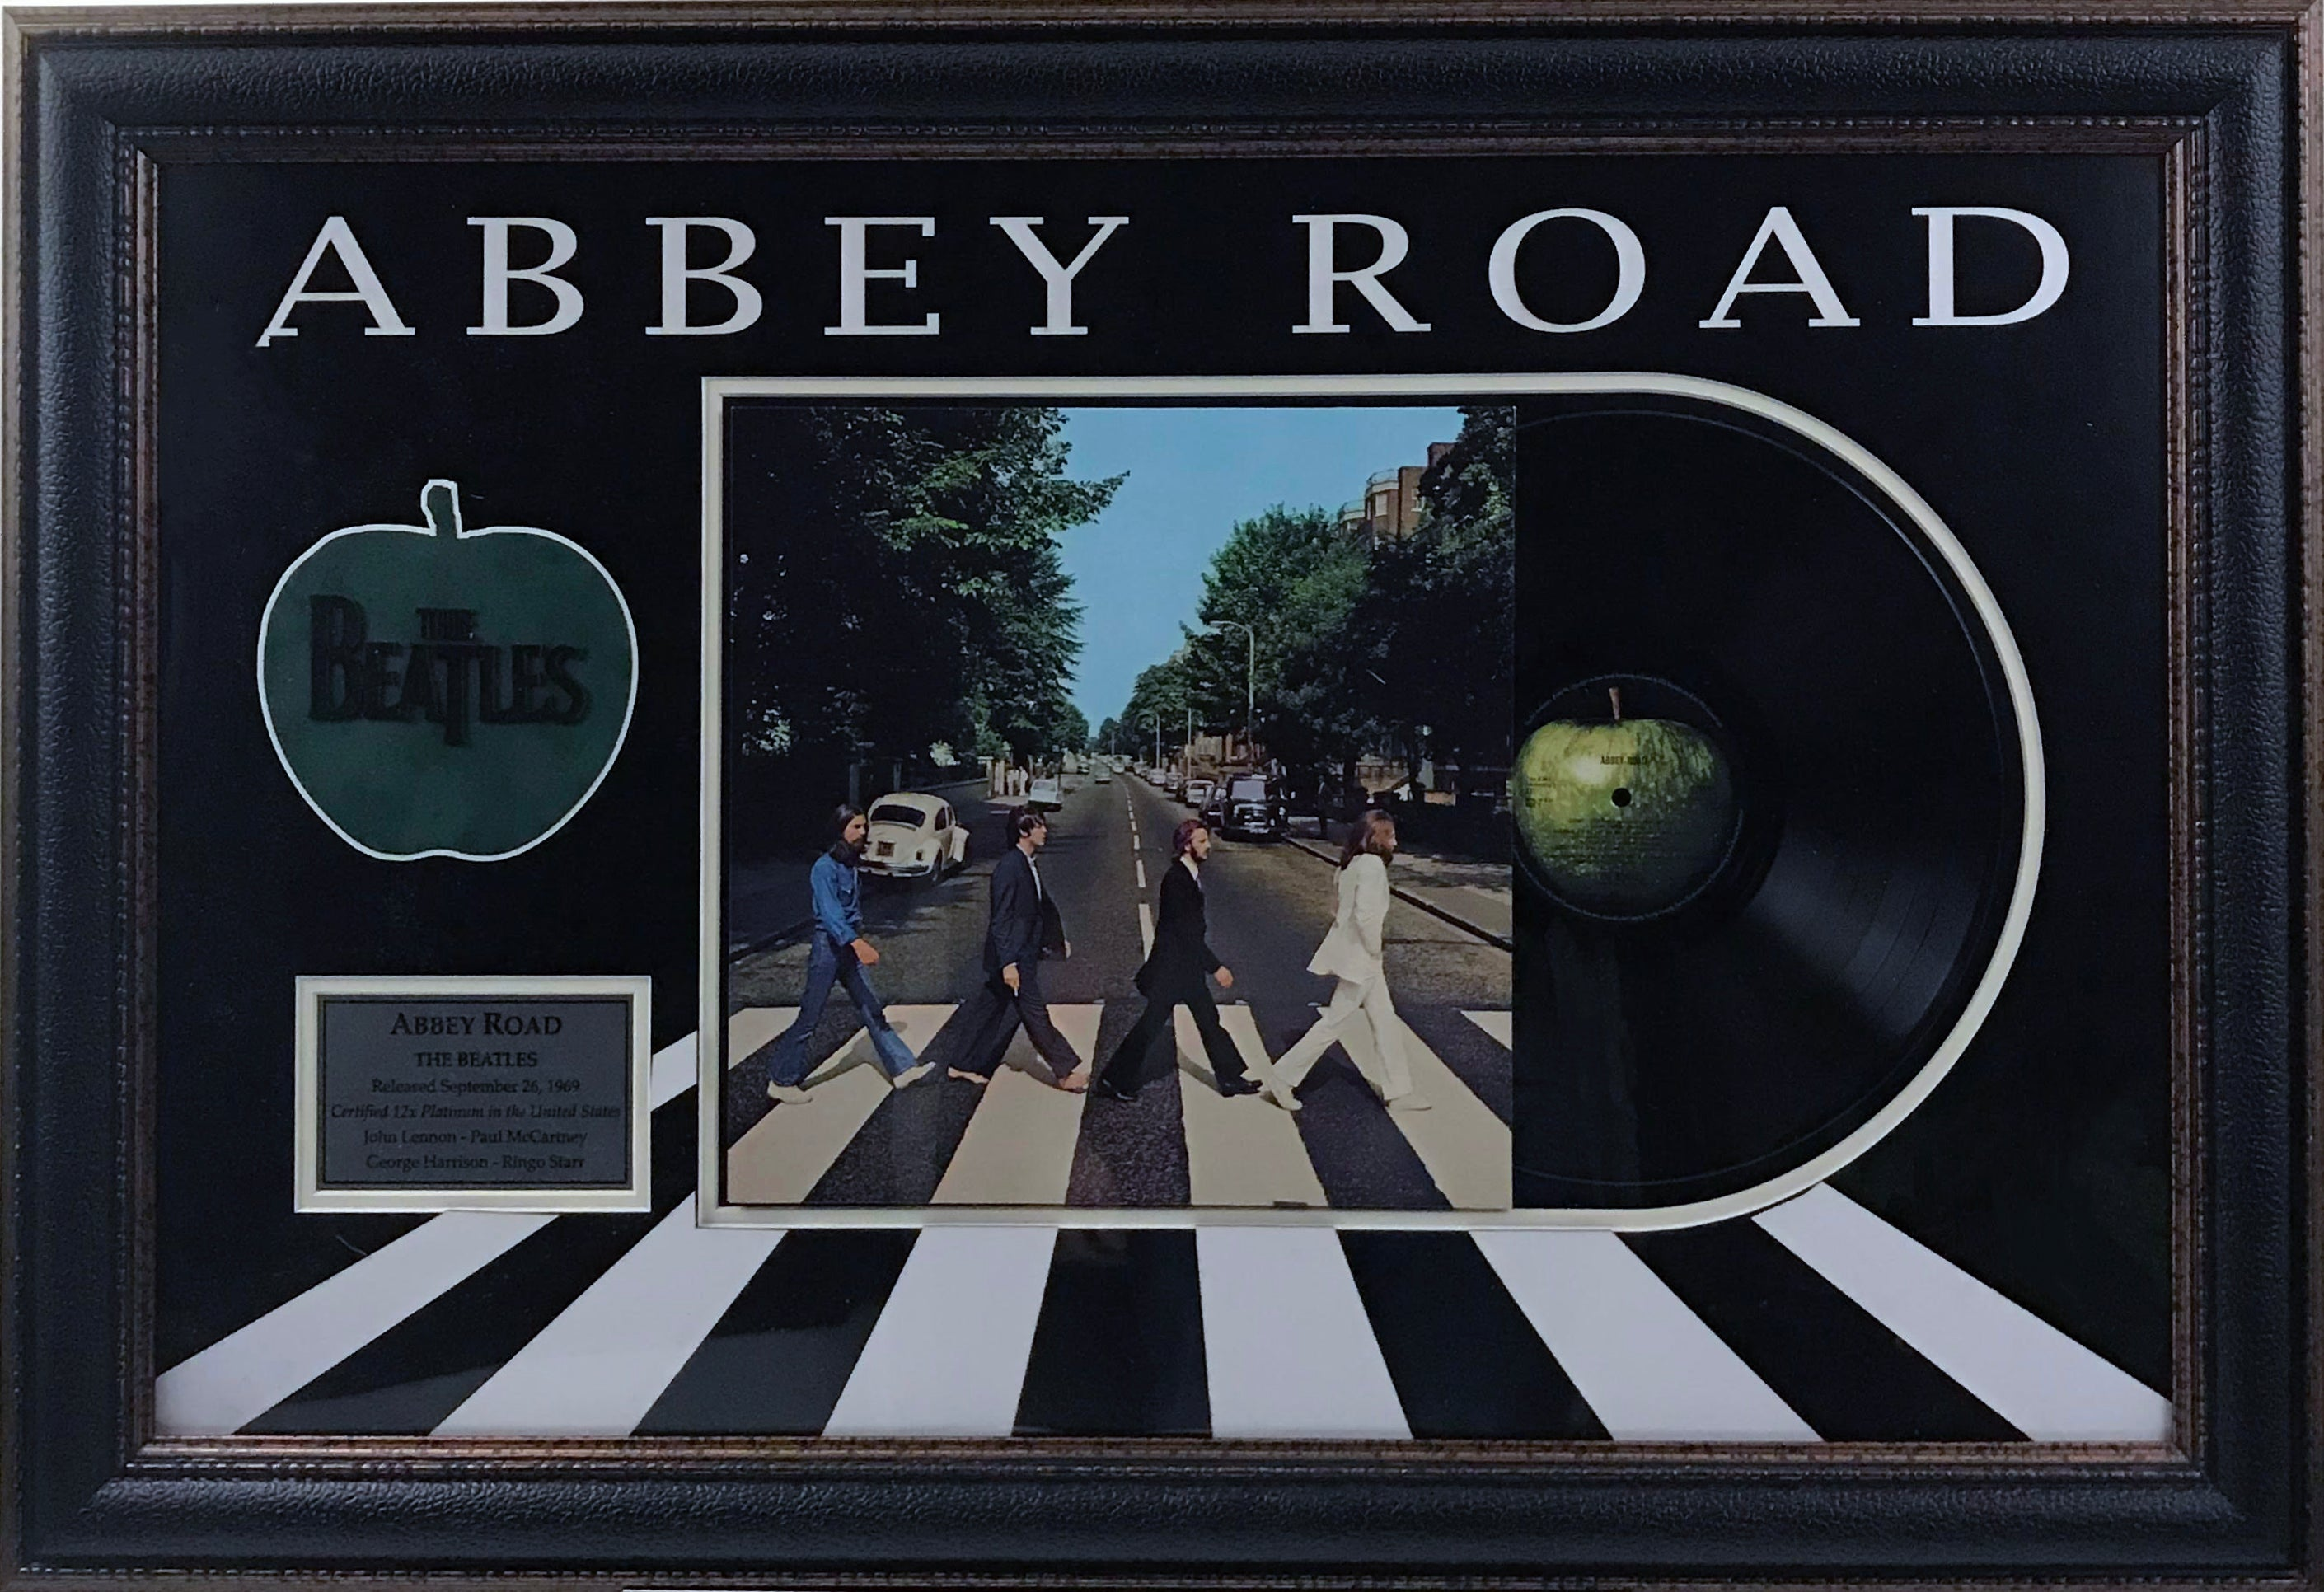 Beatles Abbey Road Framed Album Collage - Latitude Sports Marketing